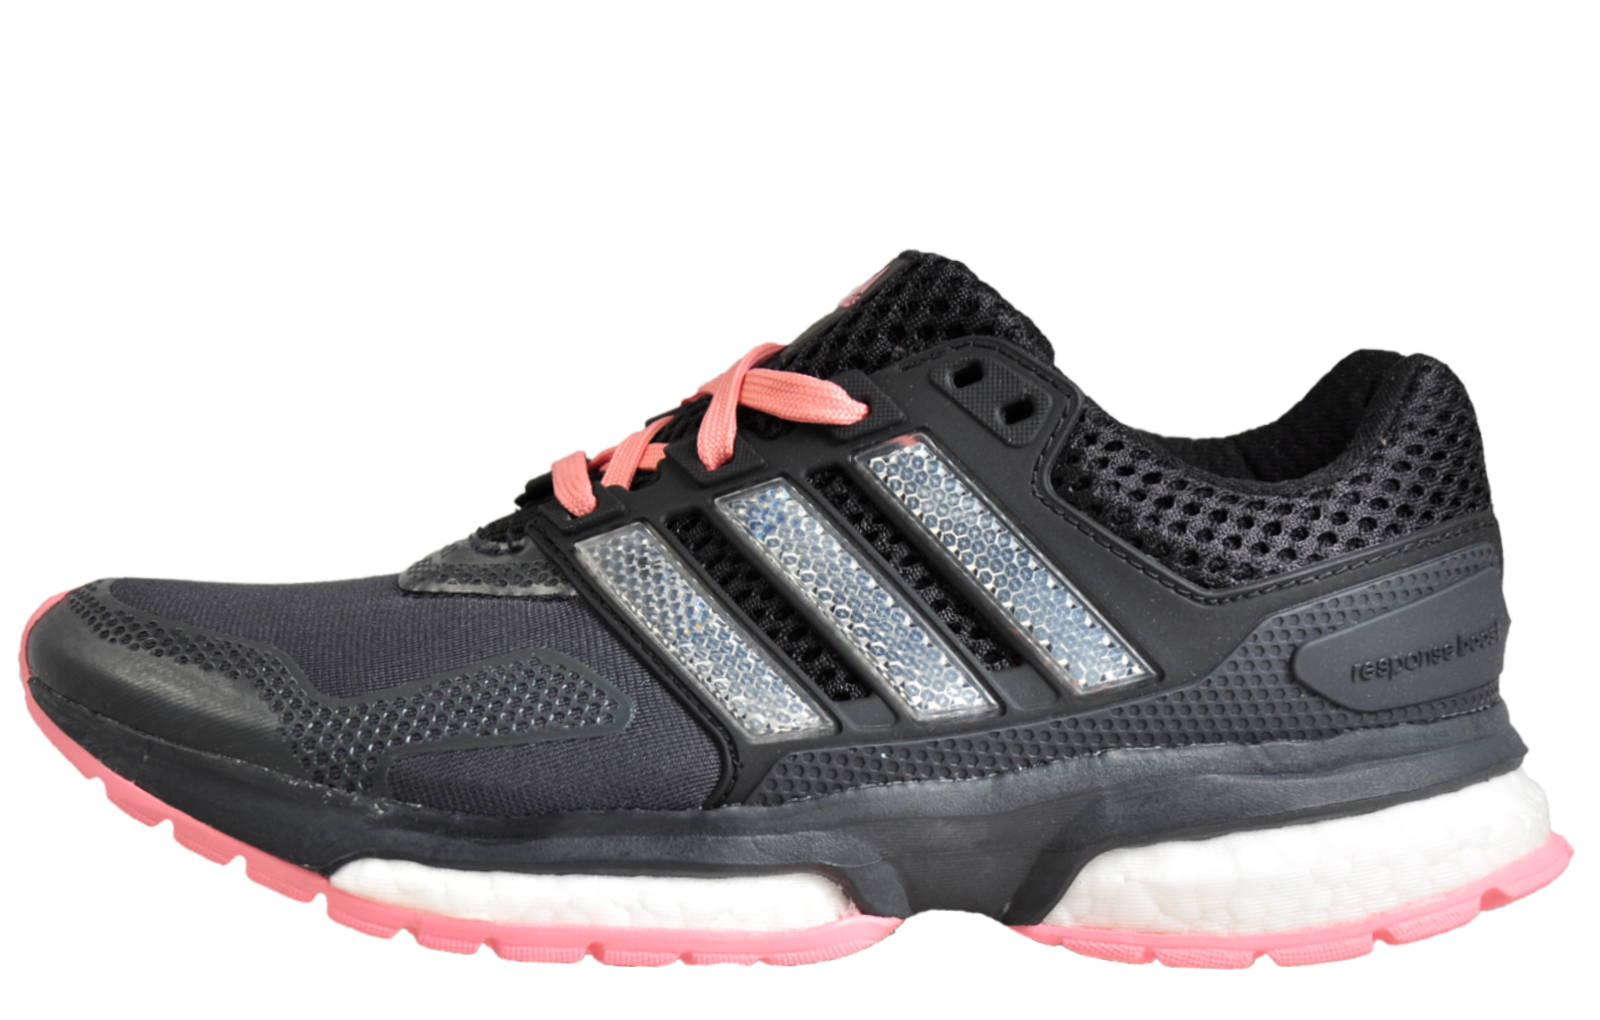 Adidas Response Boost 2 Techfit Womens - AD175927